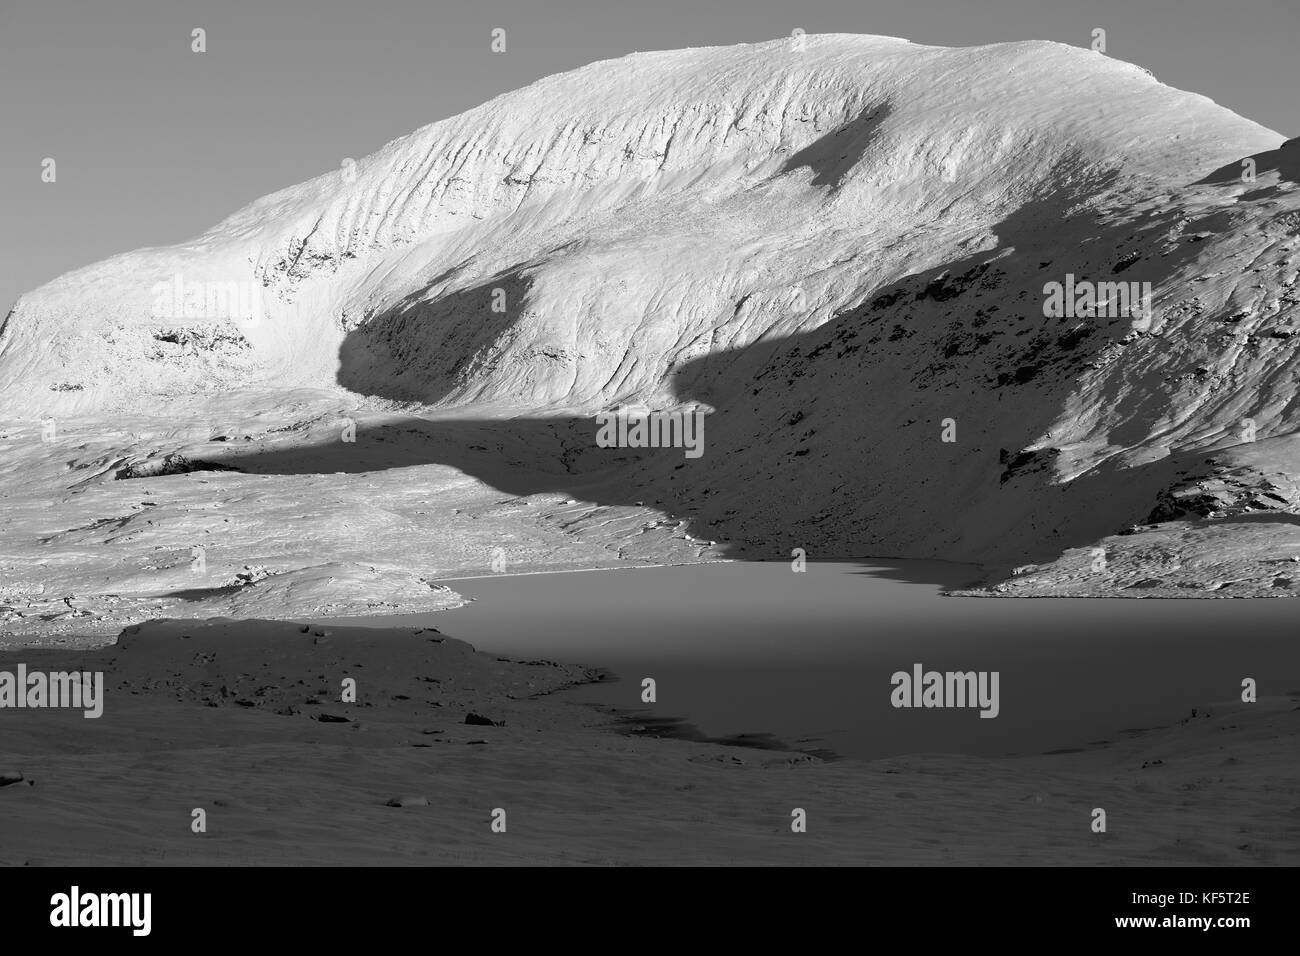 Tromsdalstind Covered In Snow In Autumn Sun - Stock Image